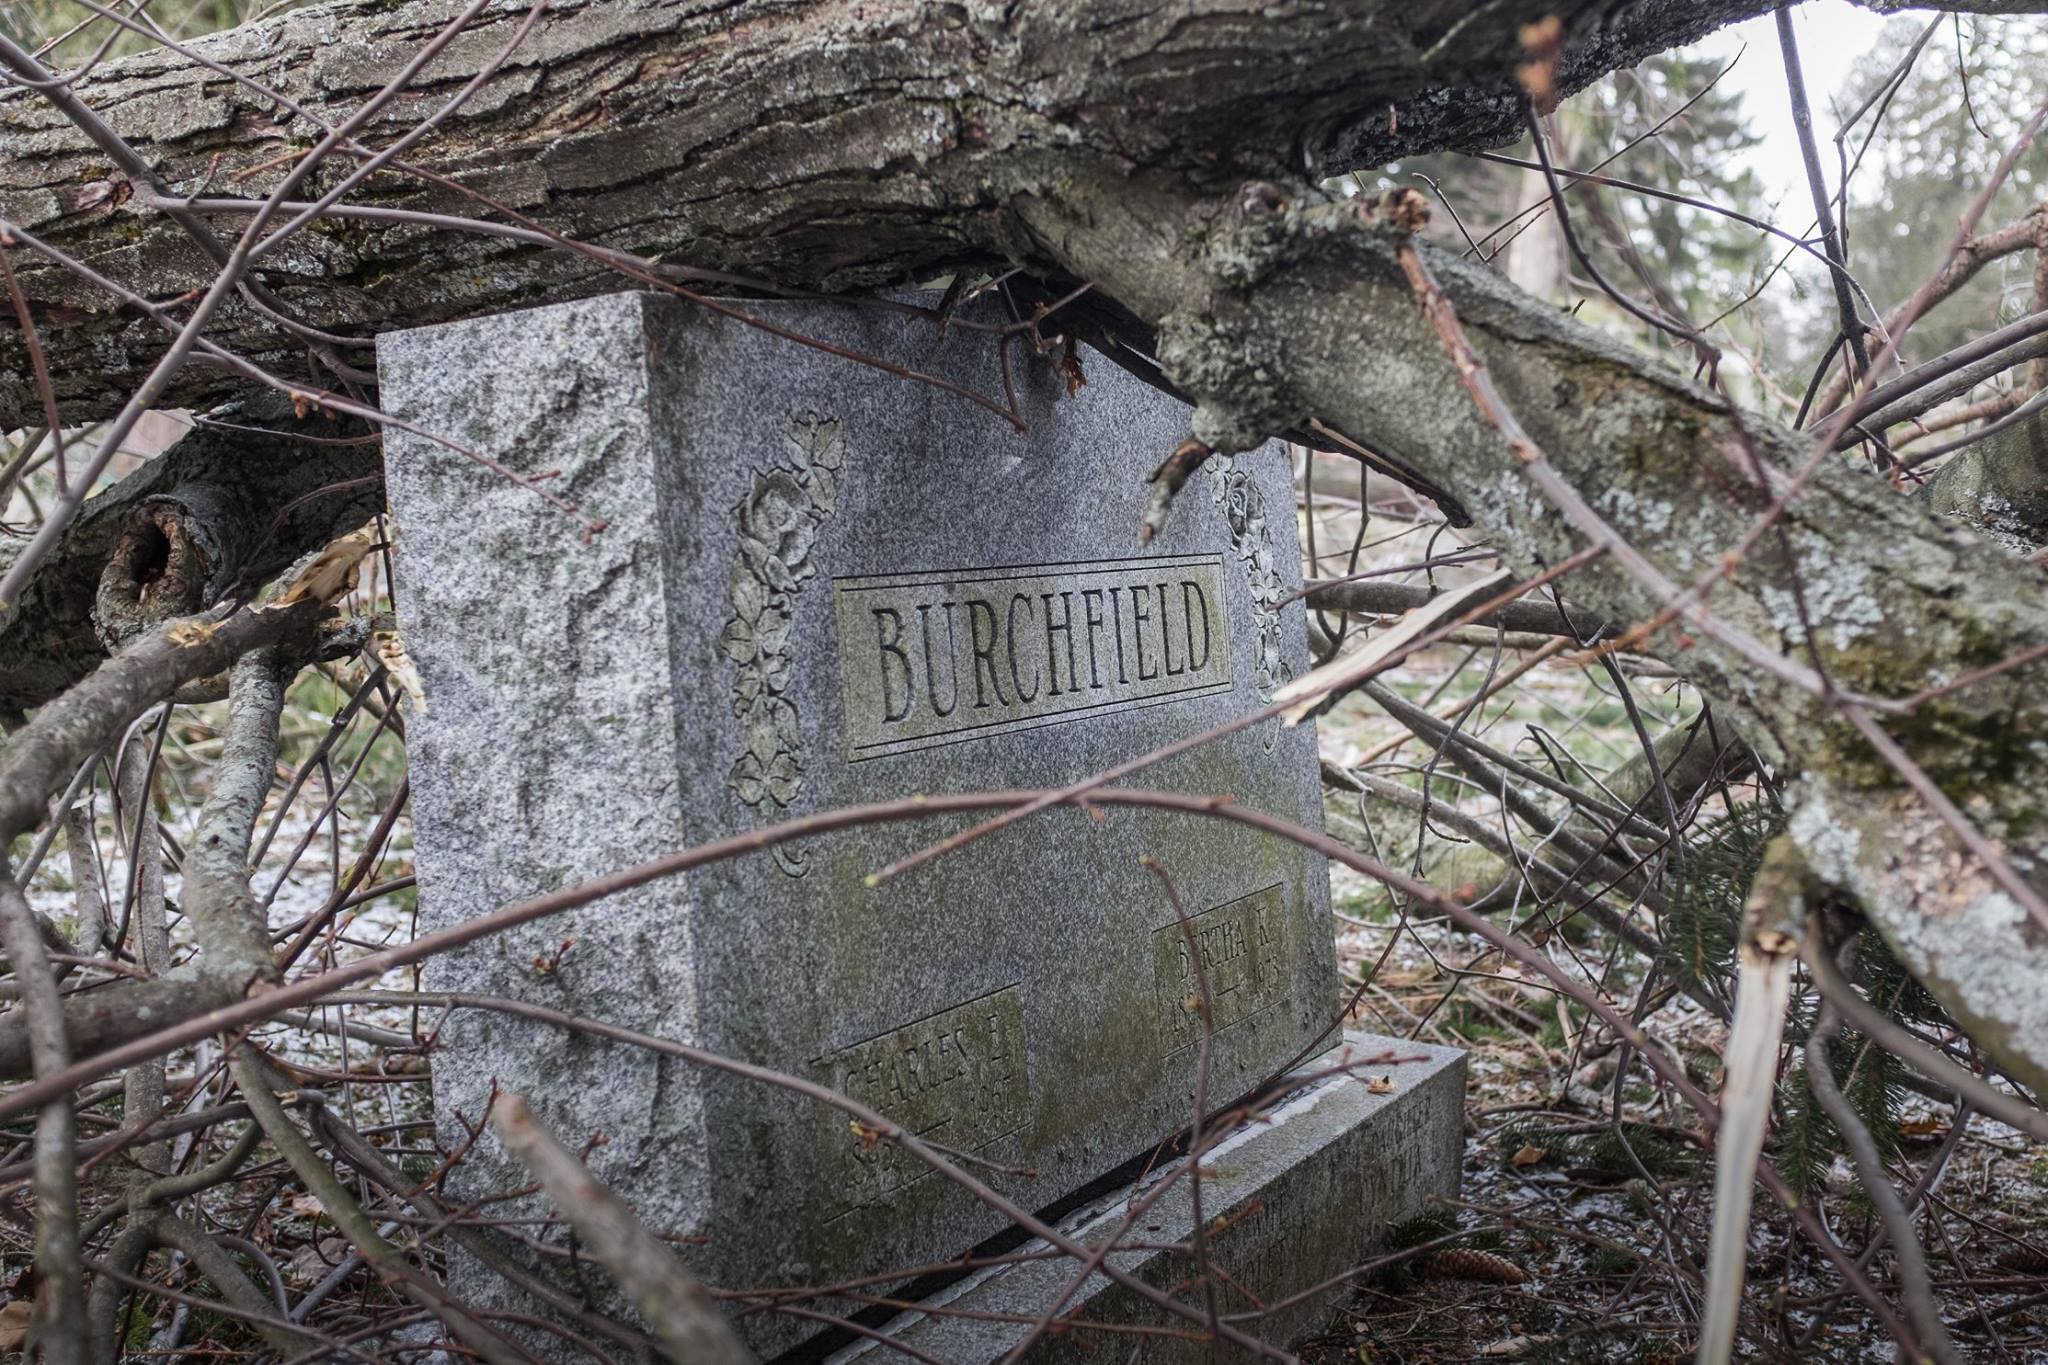 A tree fell on the grave of Charles E. Burchfield and his wife, Bertha, during a recent wind storm.